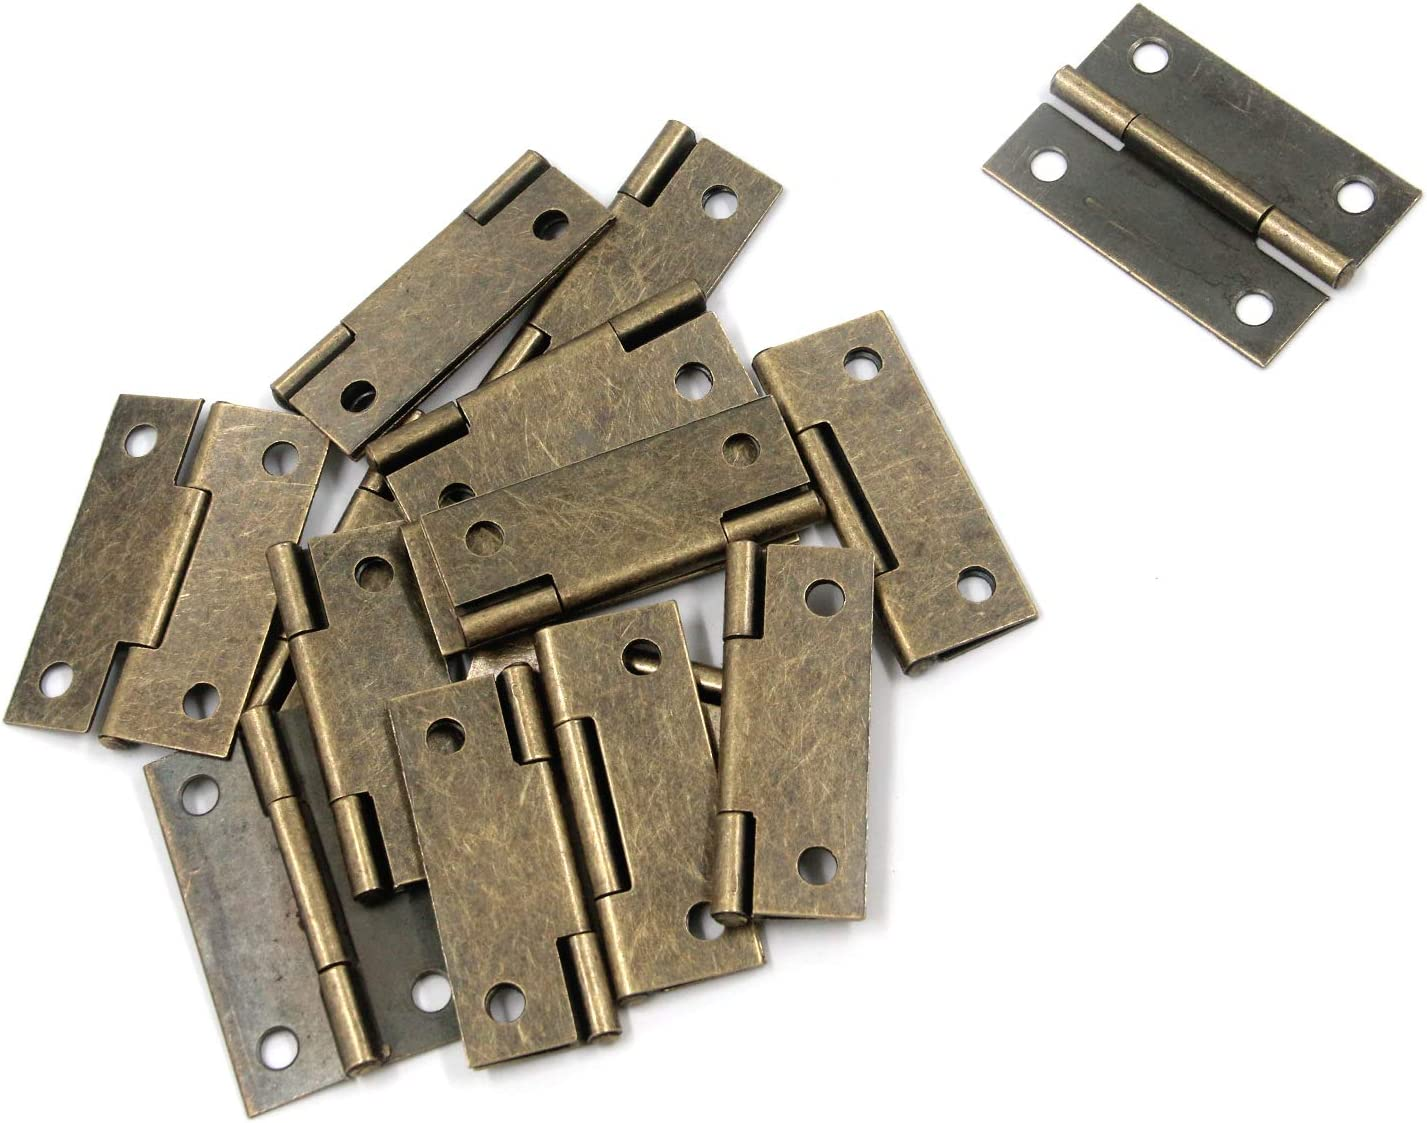 "Tulead Door Hinges Iron Box Hinges Cabinet Hinges Bronze Furniture Hinges 2""x1.33"" Chest Shed Hinges with Mounting Screws Pack of 15"